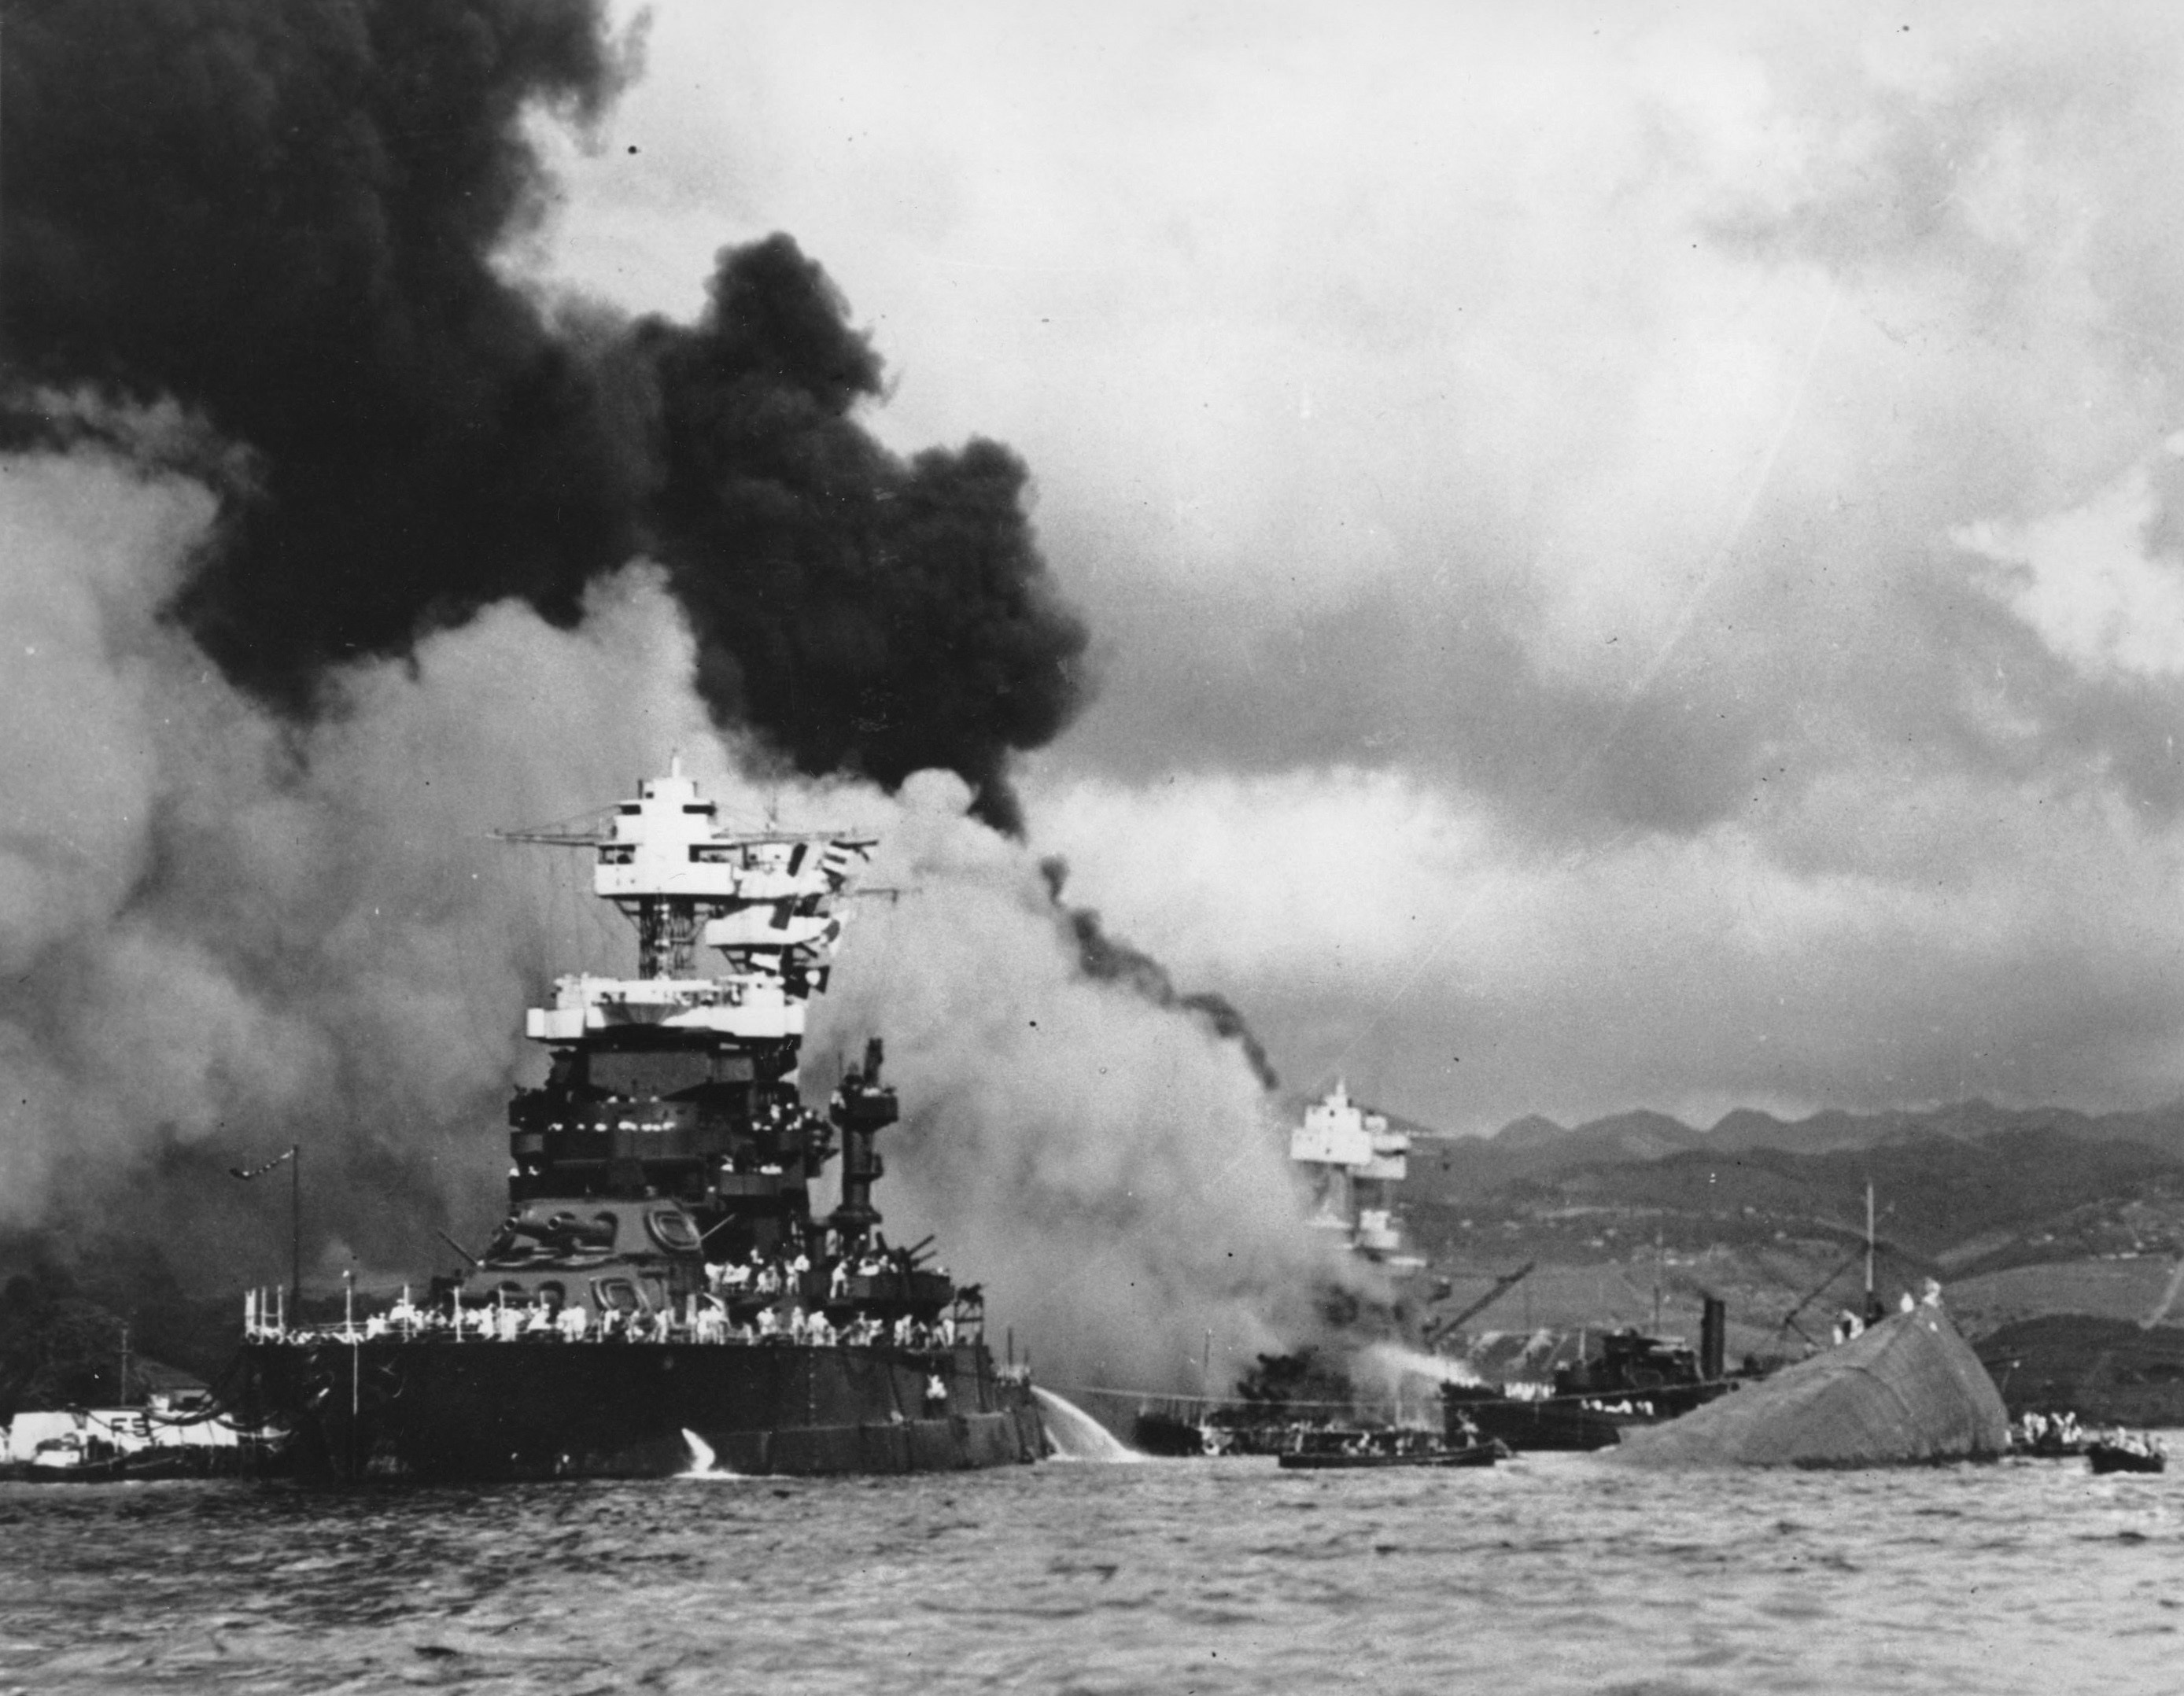 Part of the hull of the capsized USS Oklahoma is seen at right as the battleship USS West Virginia (C) begins to sink after suffering heavy damage, while the USS Maryland (L) is still afloat in Pearl Harbor, Oahu, Hawaii, in this file photo. (AP Photo/U.S. Navy)